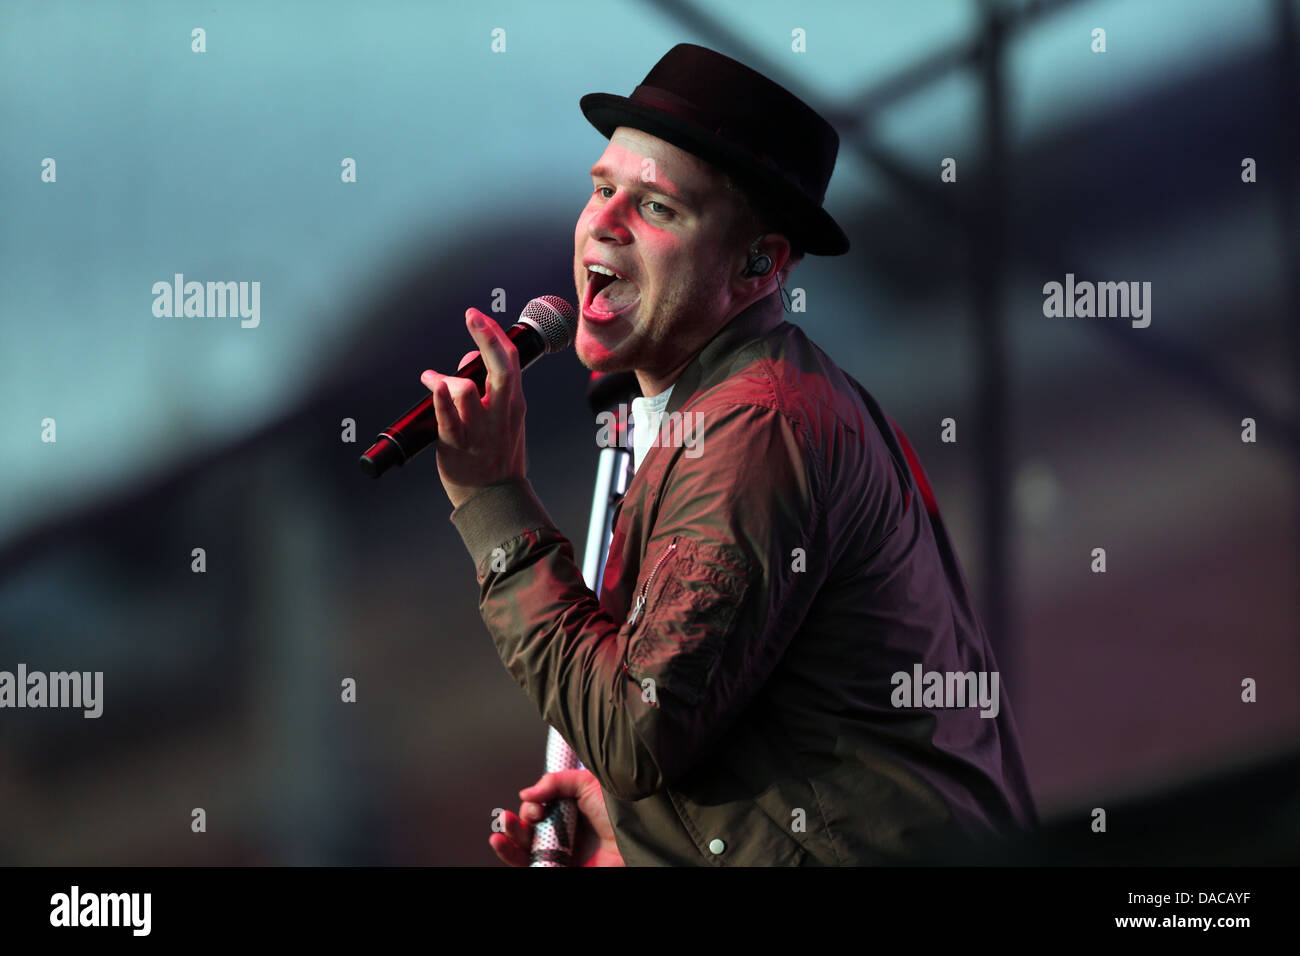 Singer Olly Murs performing live in Middlesbrough's Centre Square. - Stock Image